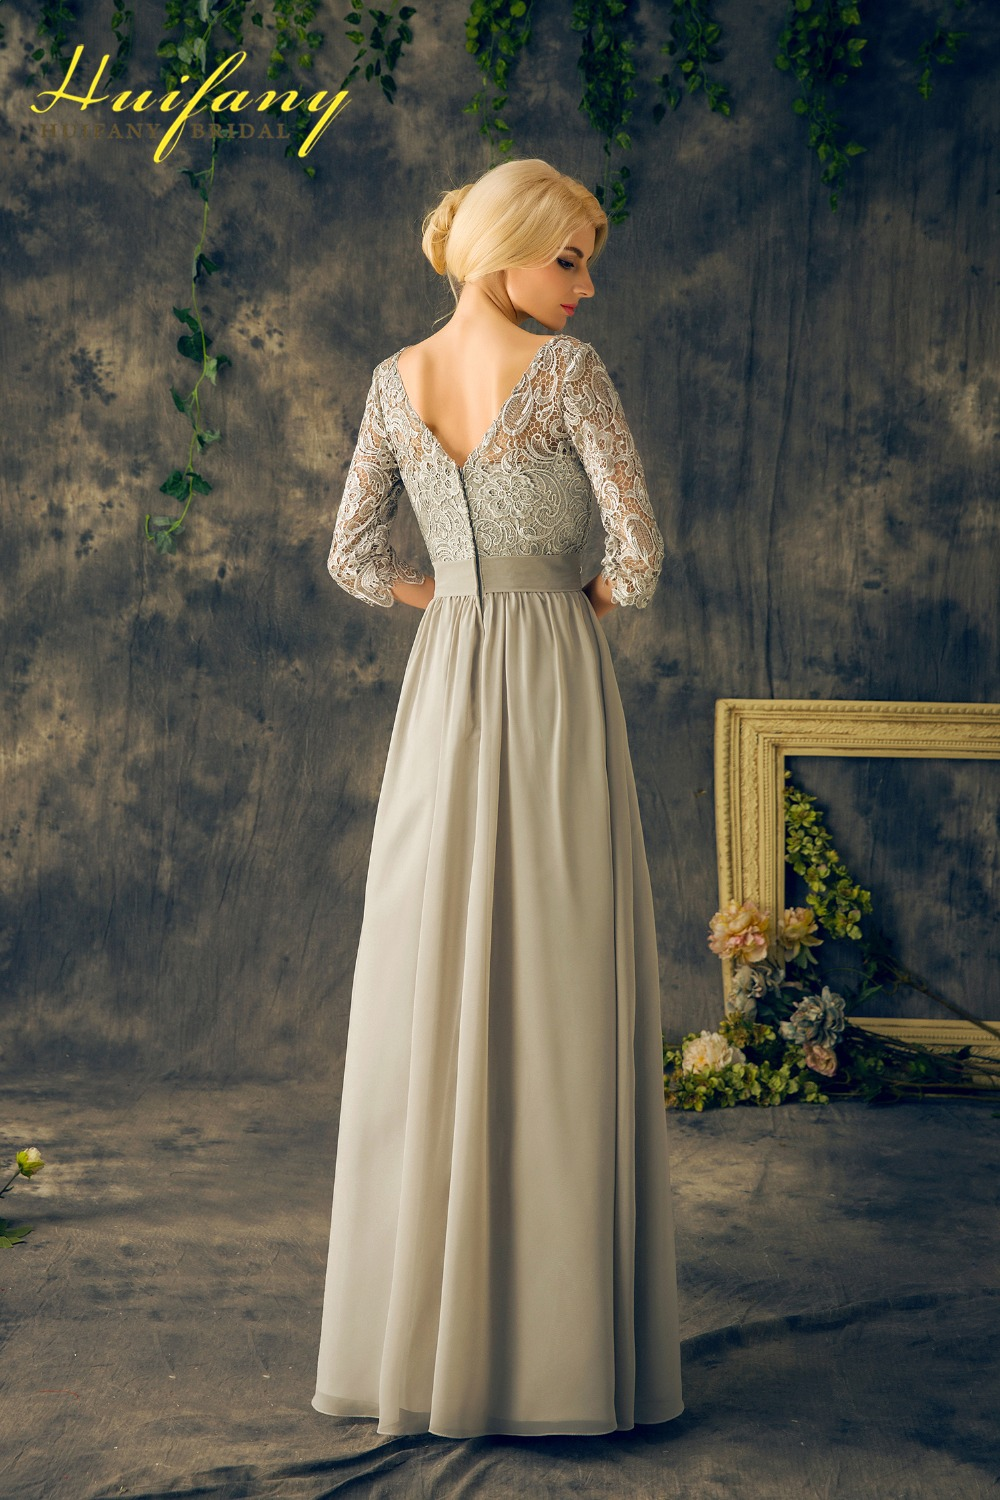 Sage Green Mother Of The Groom Dress For Wedding Bateau Neck Low Back Lace Half Sleeves Bride Dresses Real Image In